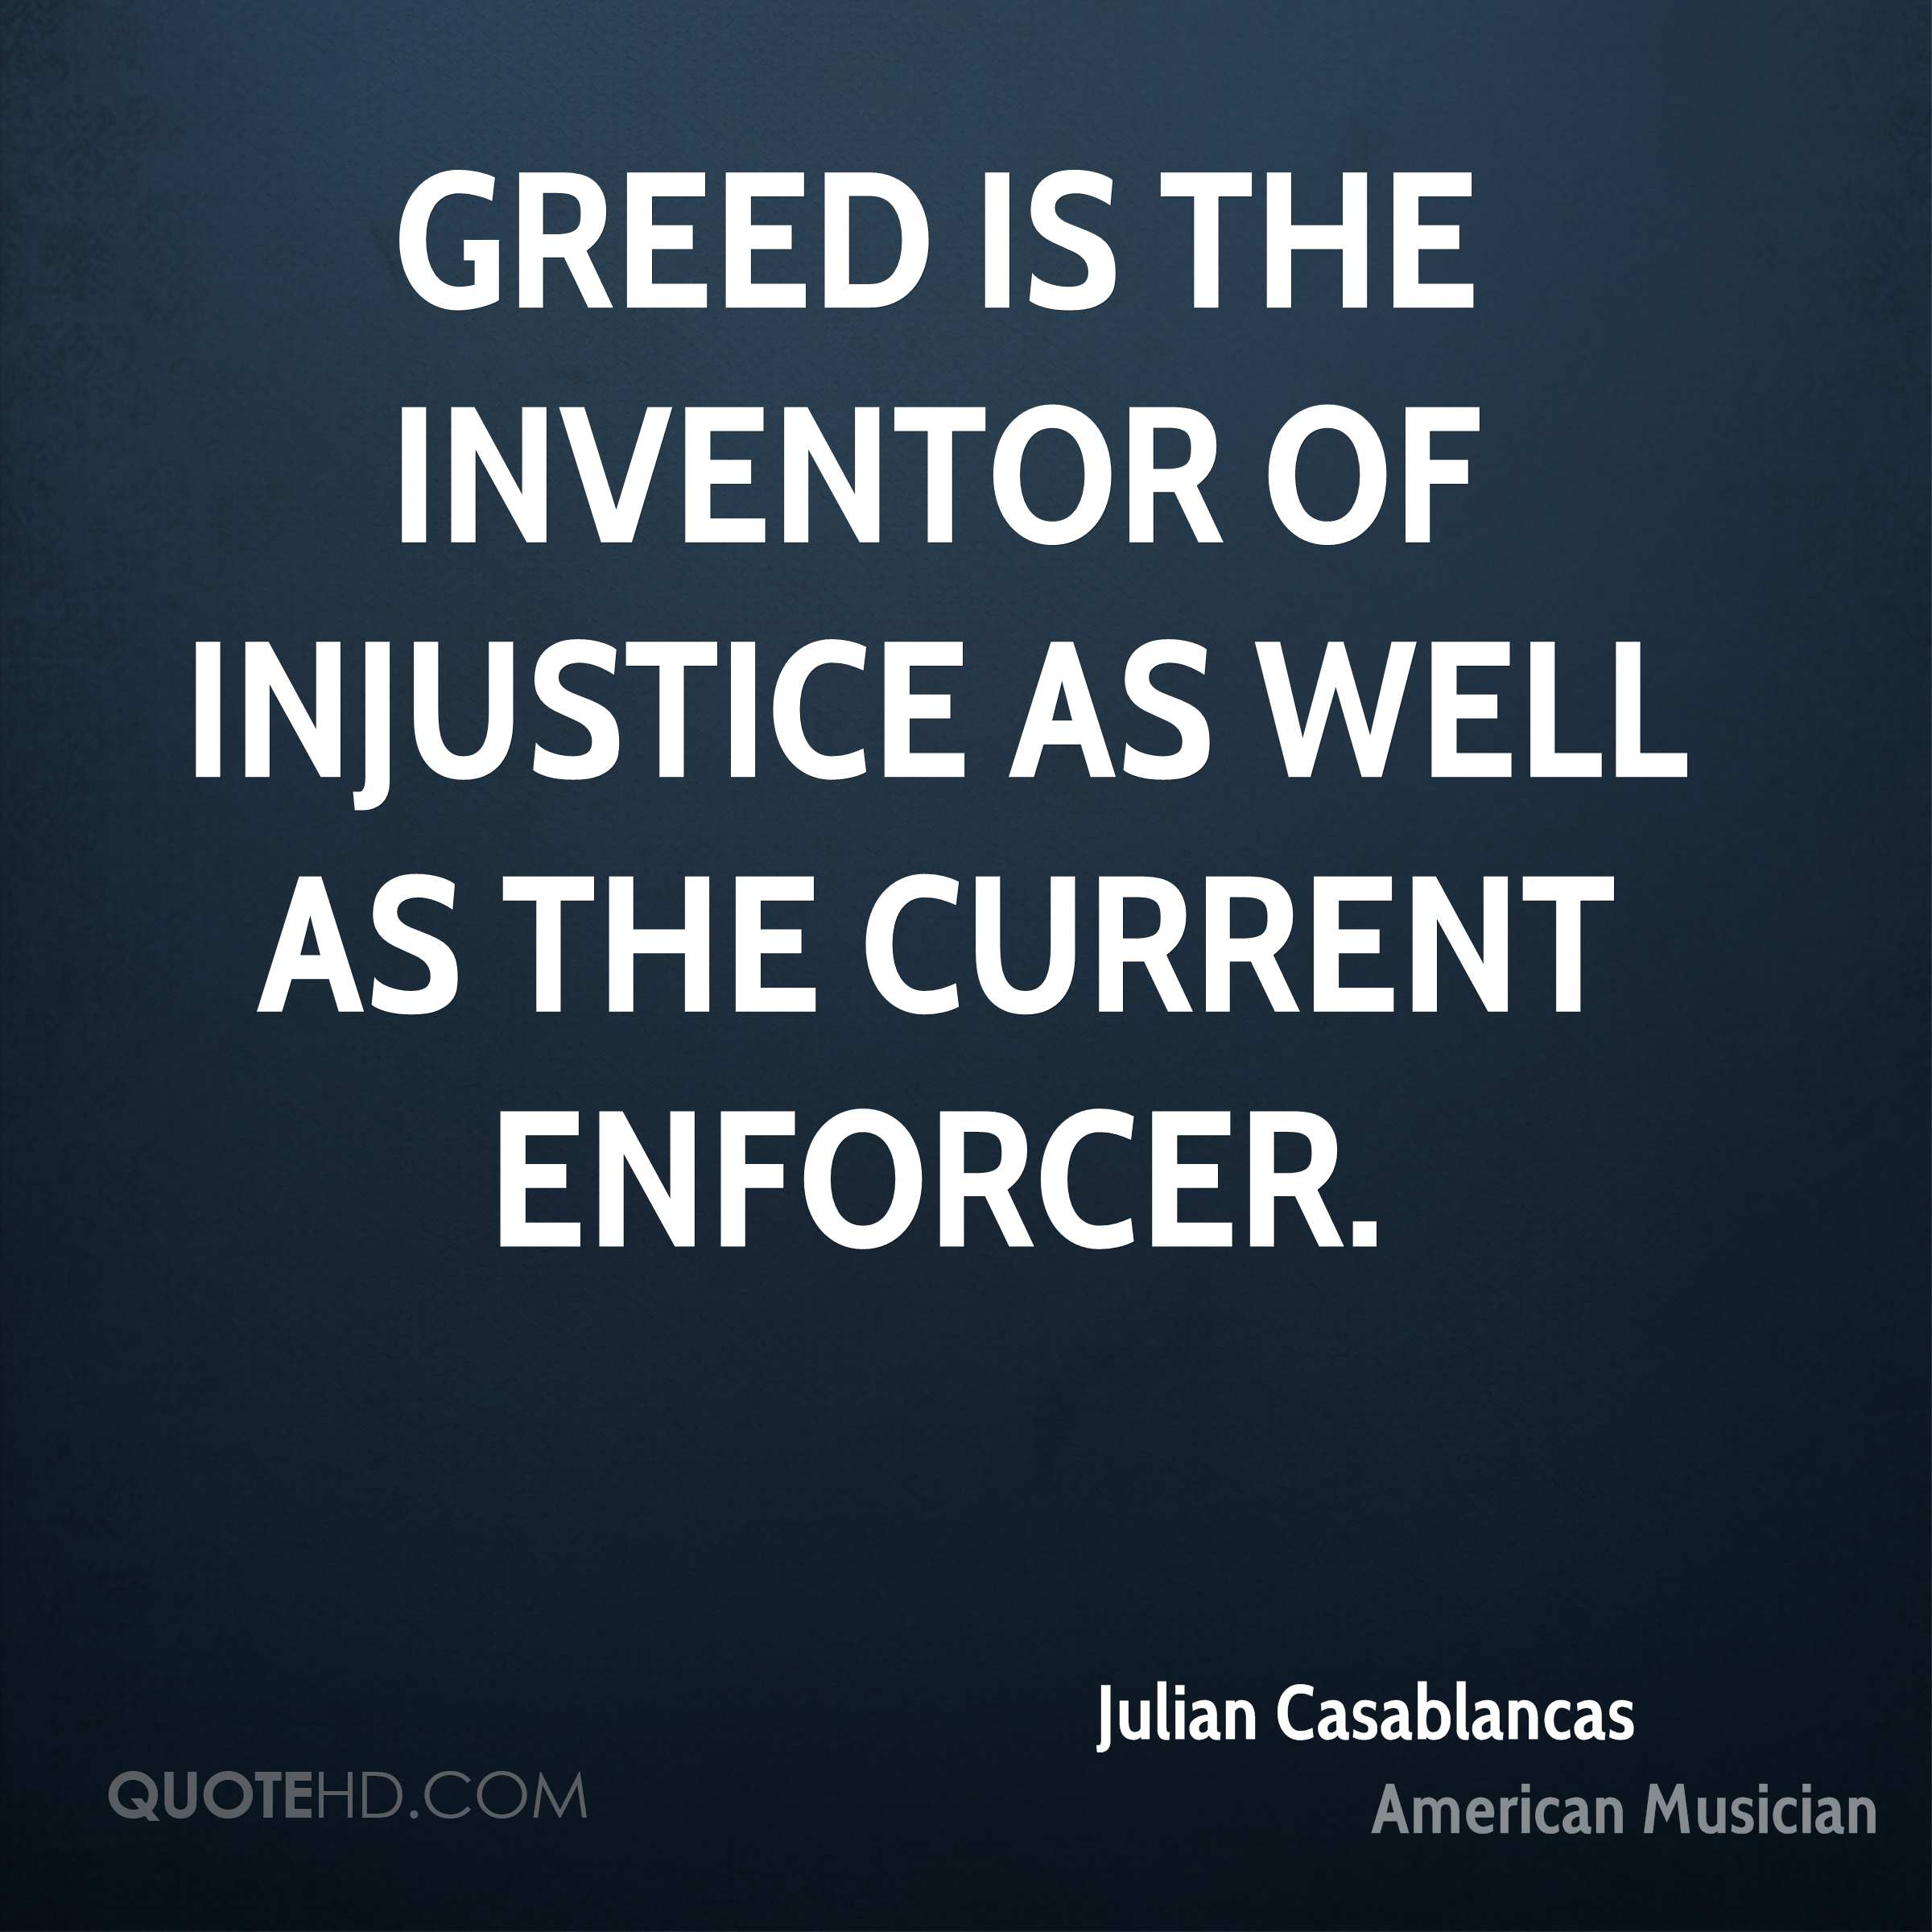 Greed is the inventor of injustice as well as the current enforcer.